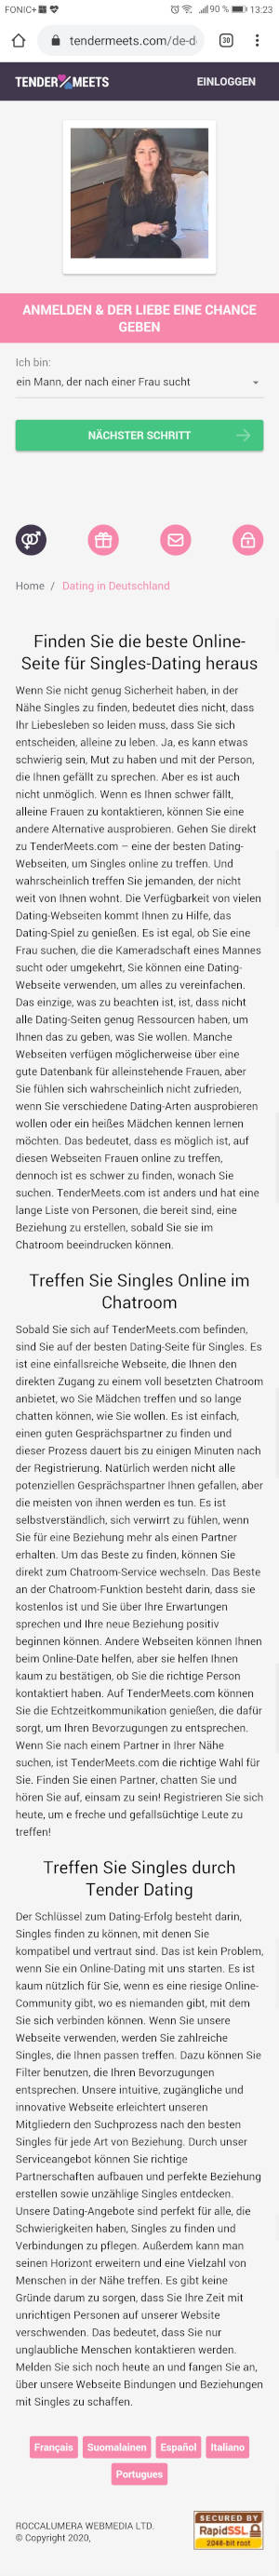 long mobile Screenshot of Tendermeets article